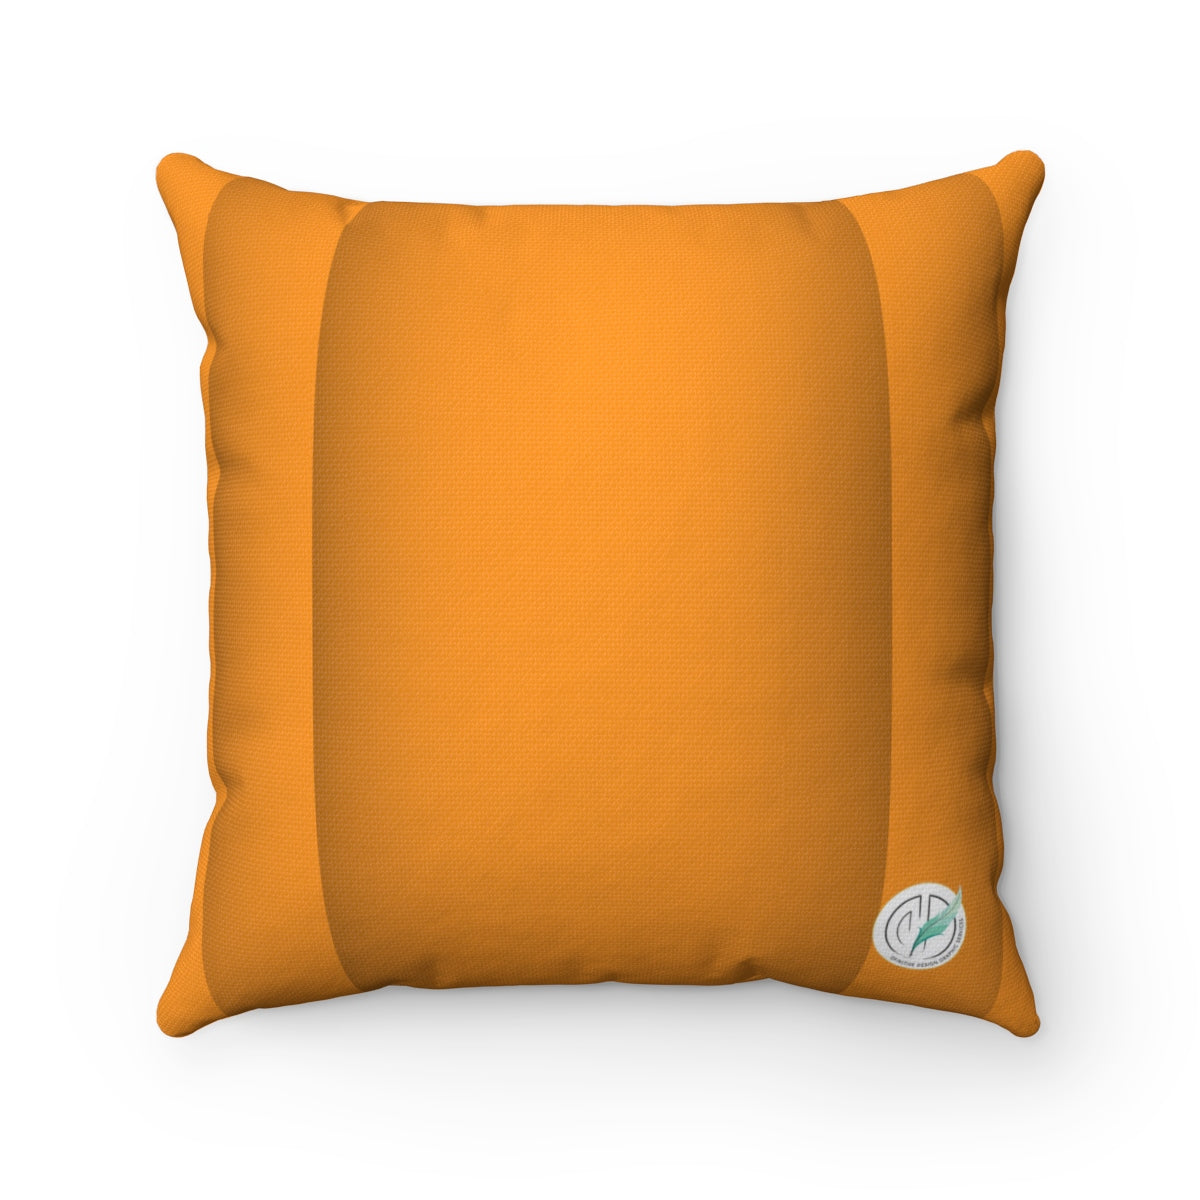 Trick or Treat Owl-O-Lantern Spun Polyester Square Pillow Case